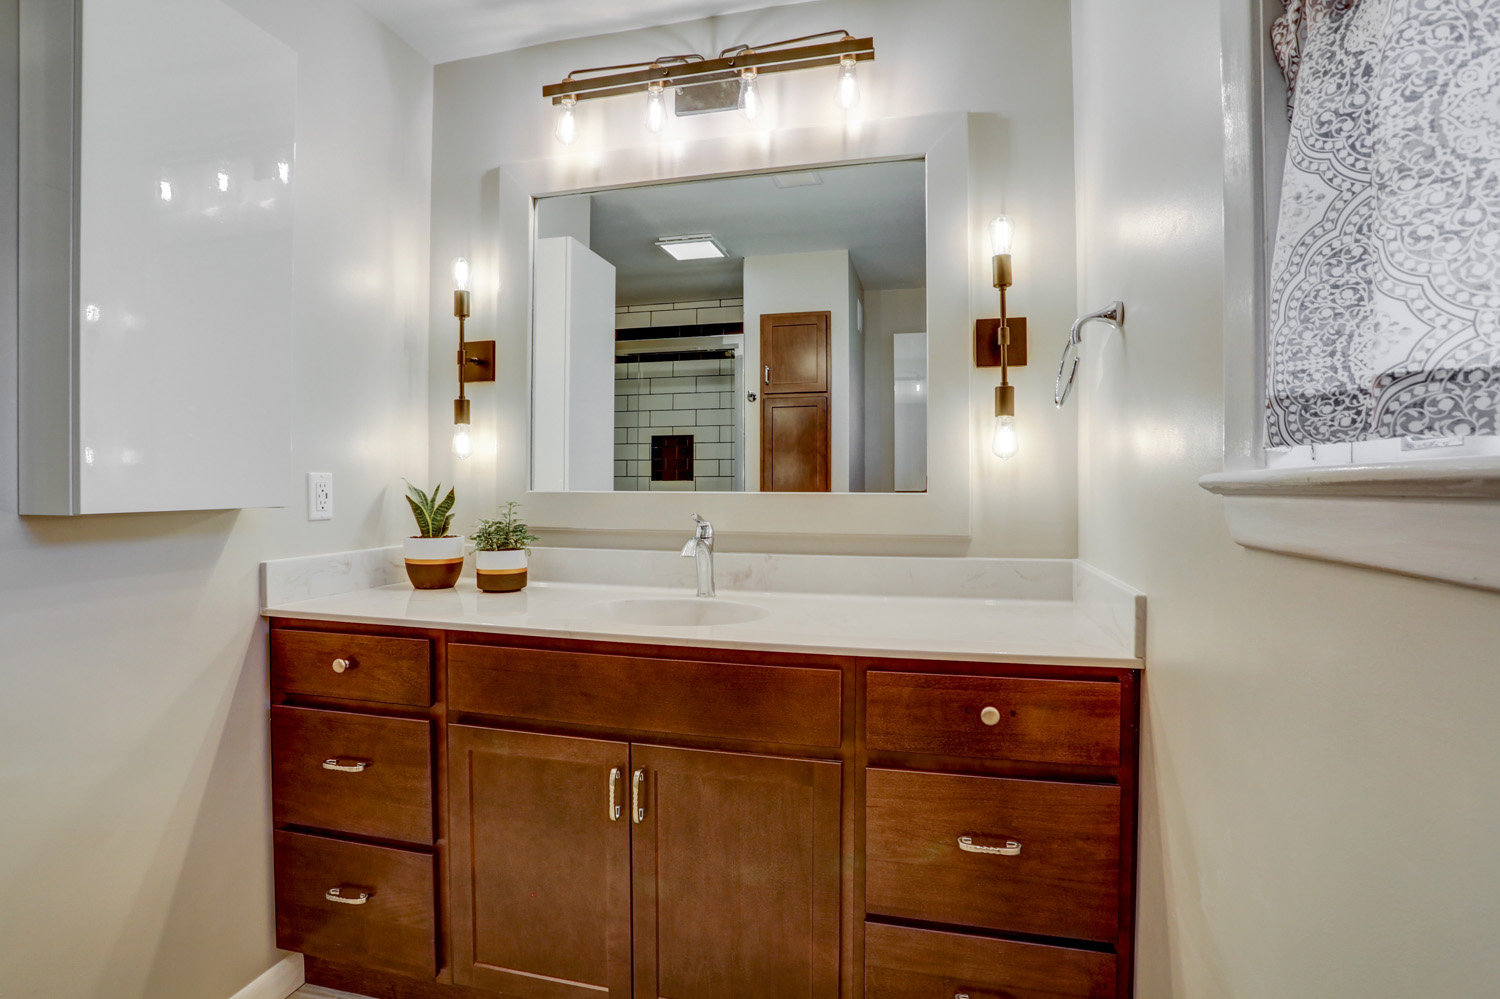 Vanity and wall sconces in Manheim Township master bathroom remodel